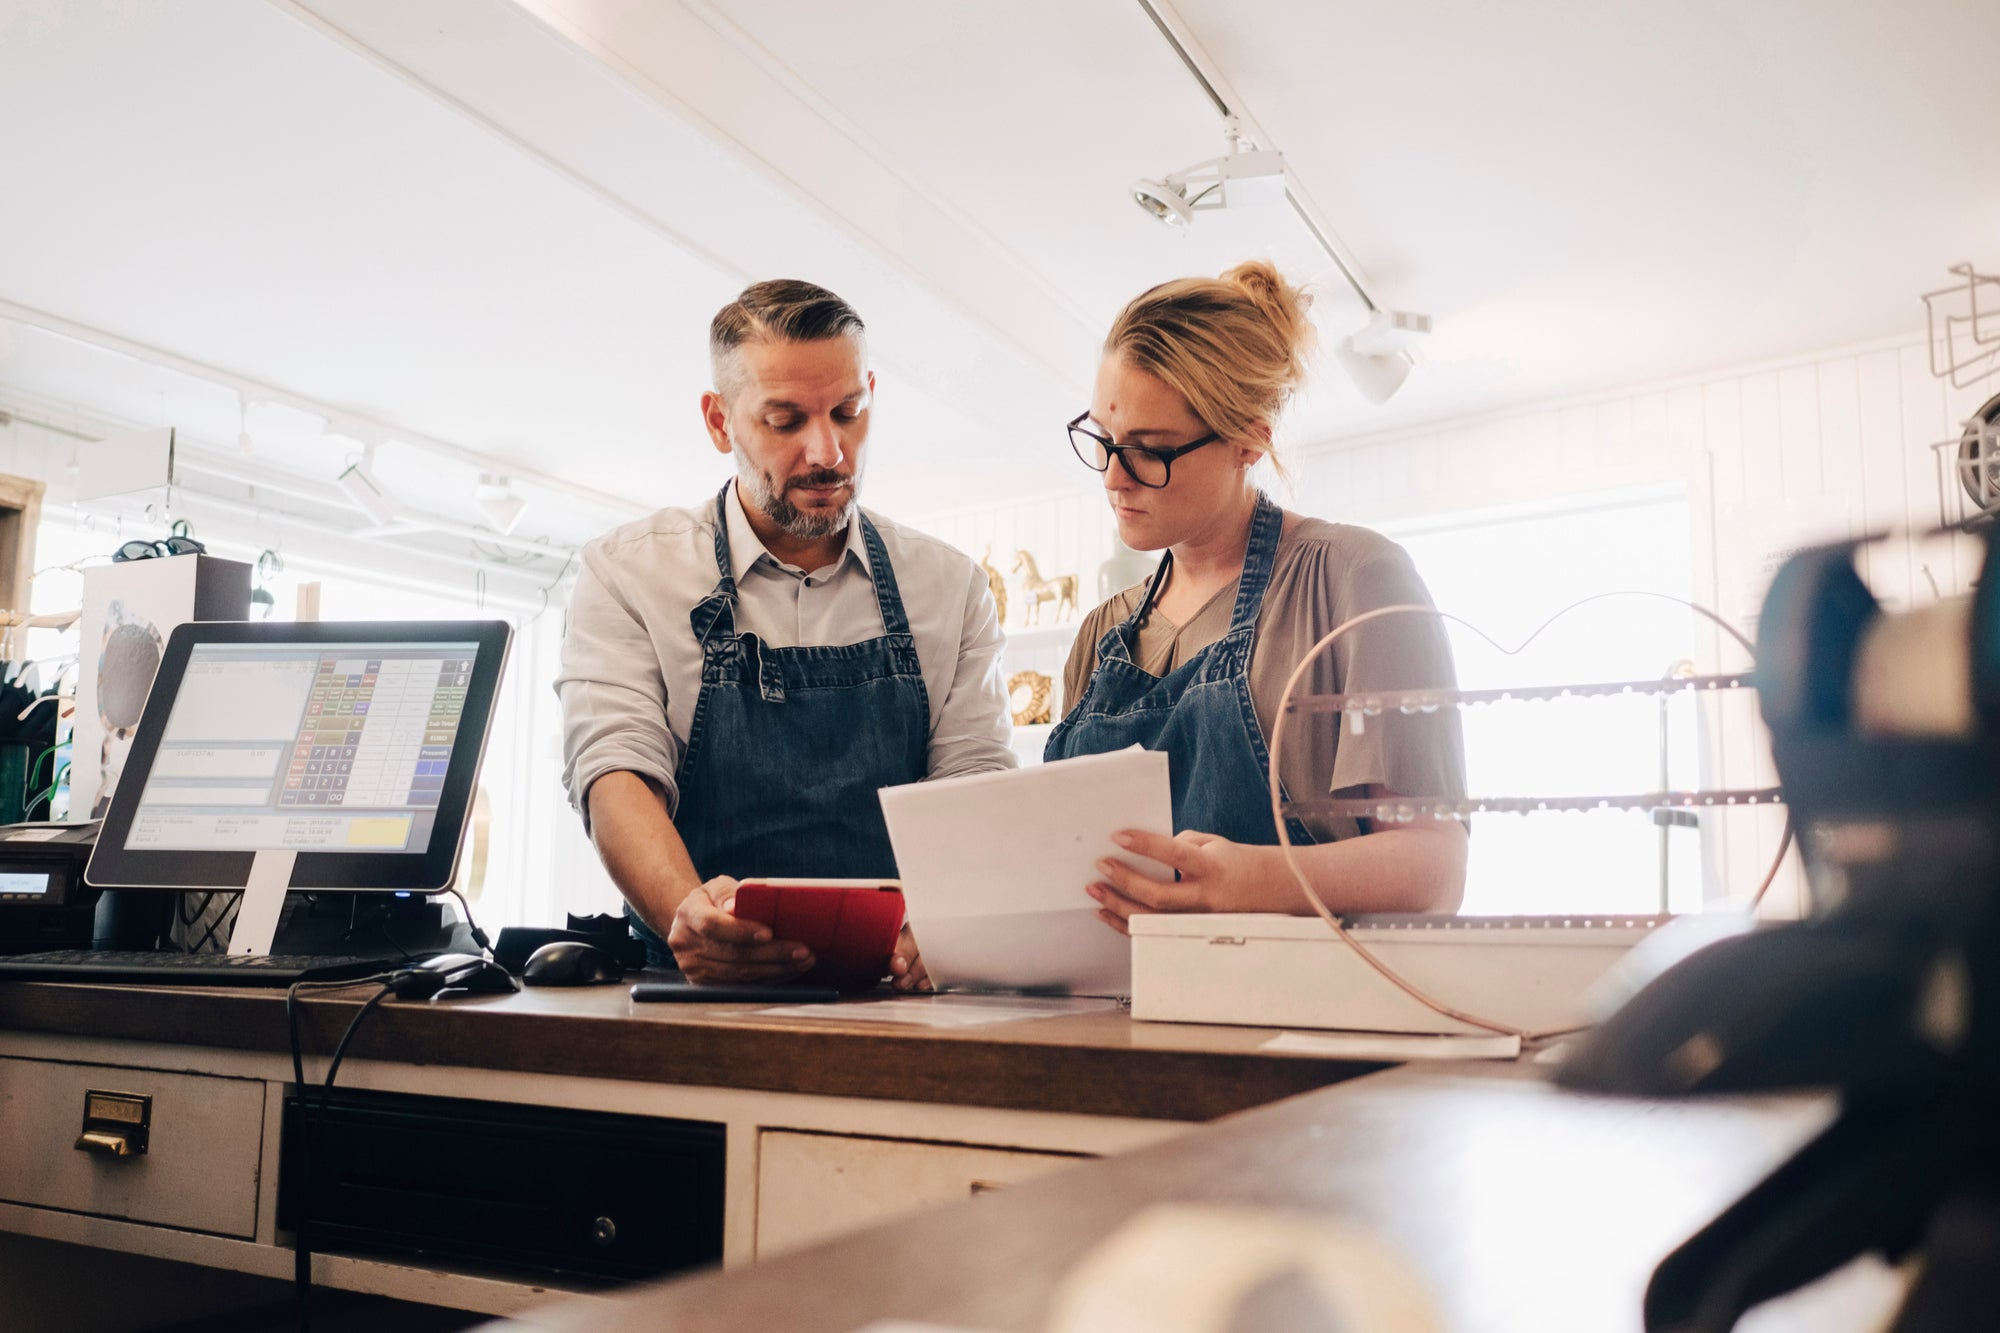 4 Key Strategies Small Retailers Need for a Healthy Business